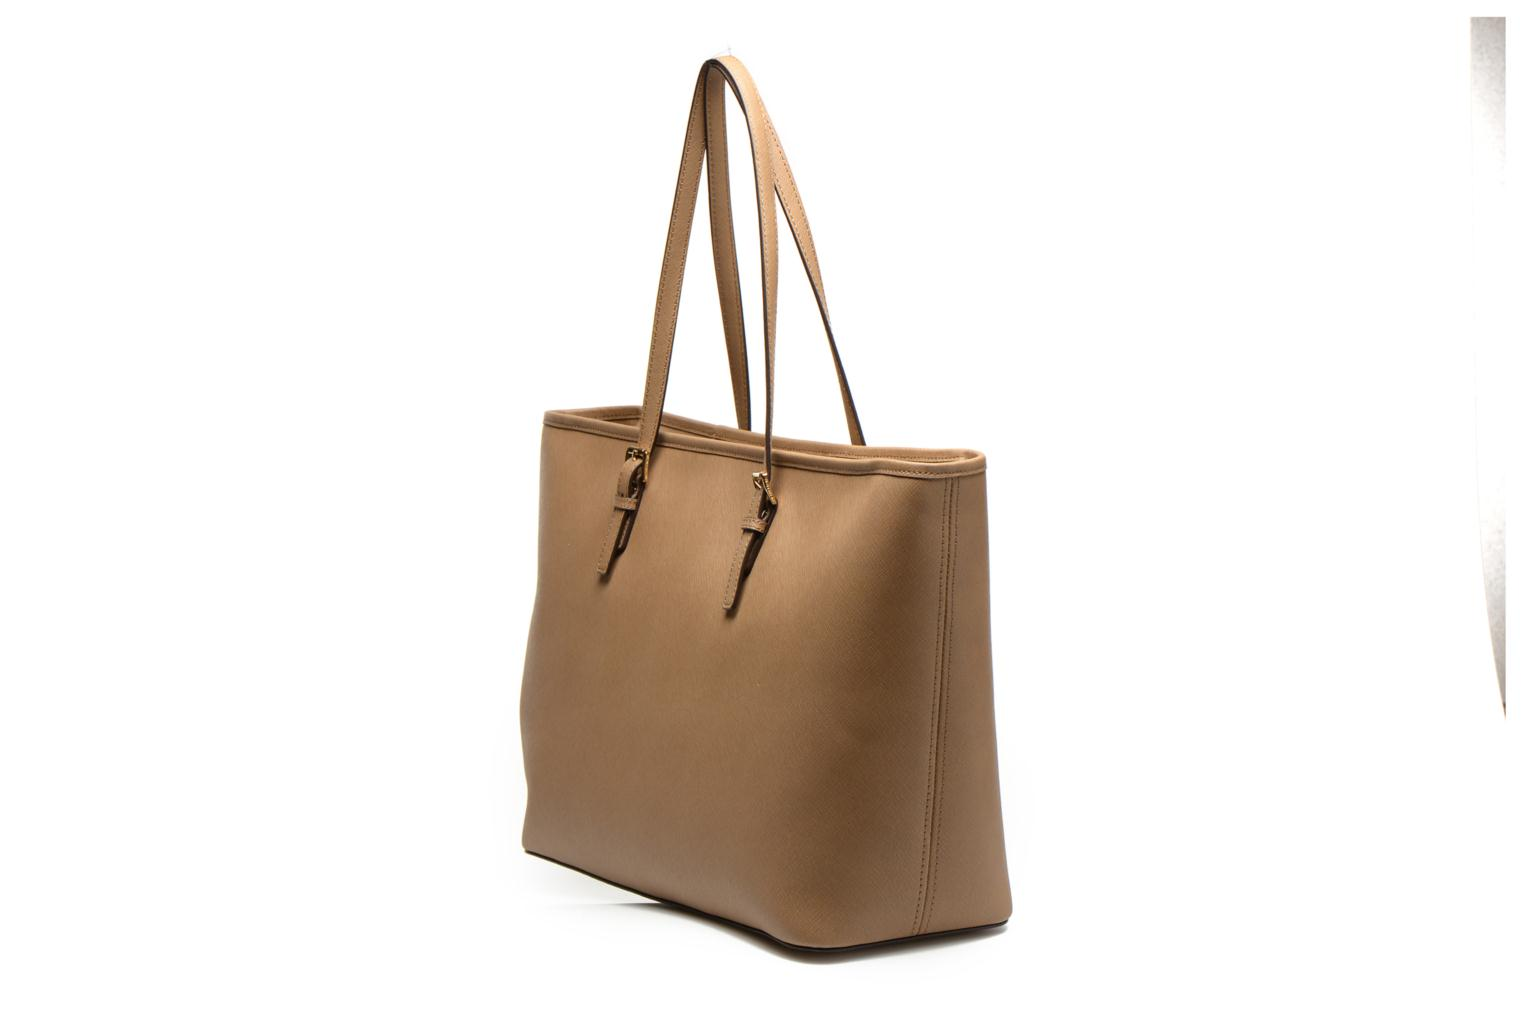 JET SET TRAVEL MD TZ Multi Tote Saffiano Dark khaki